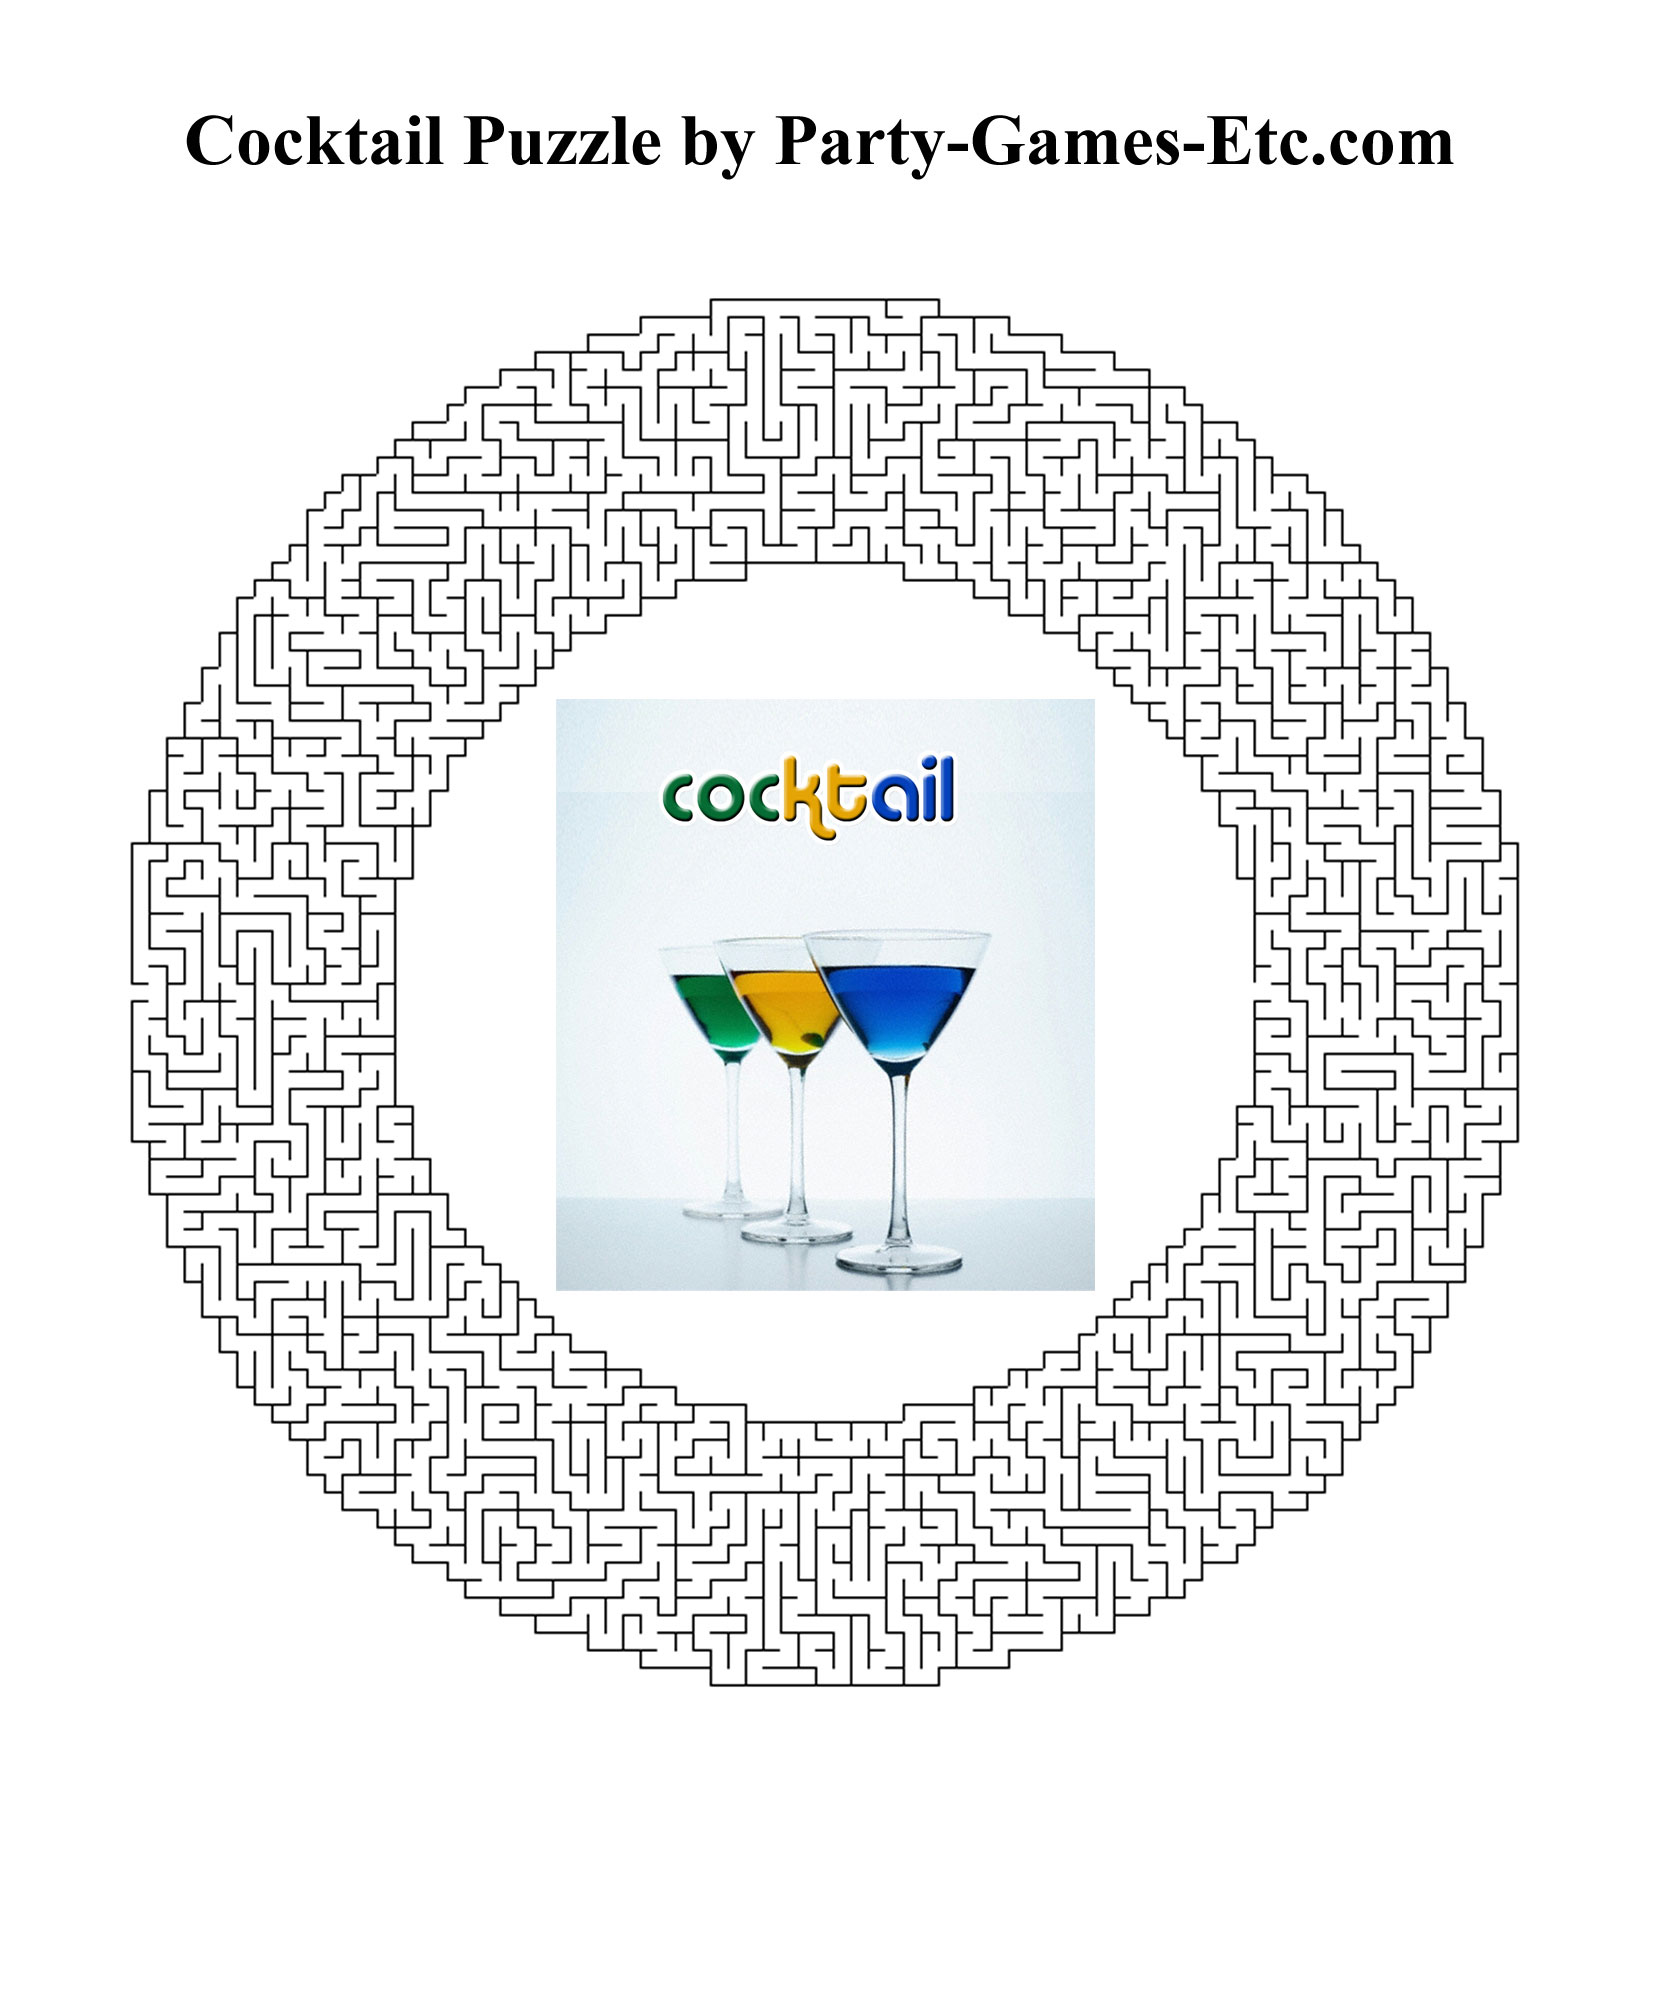 Free Printable Cocktail Party Game and Pen and Paper Activity